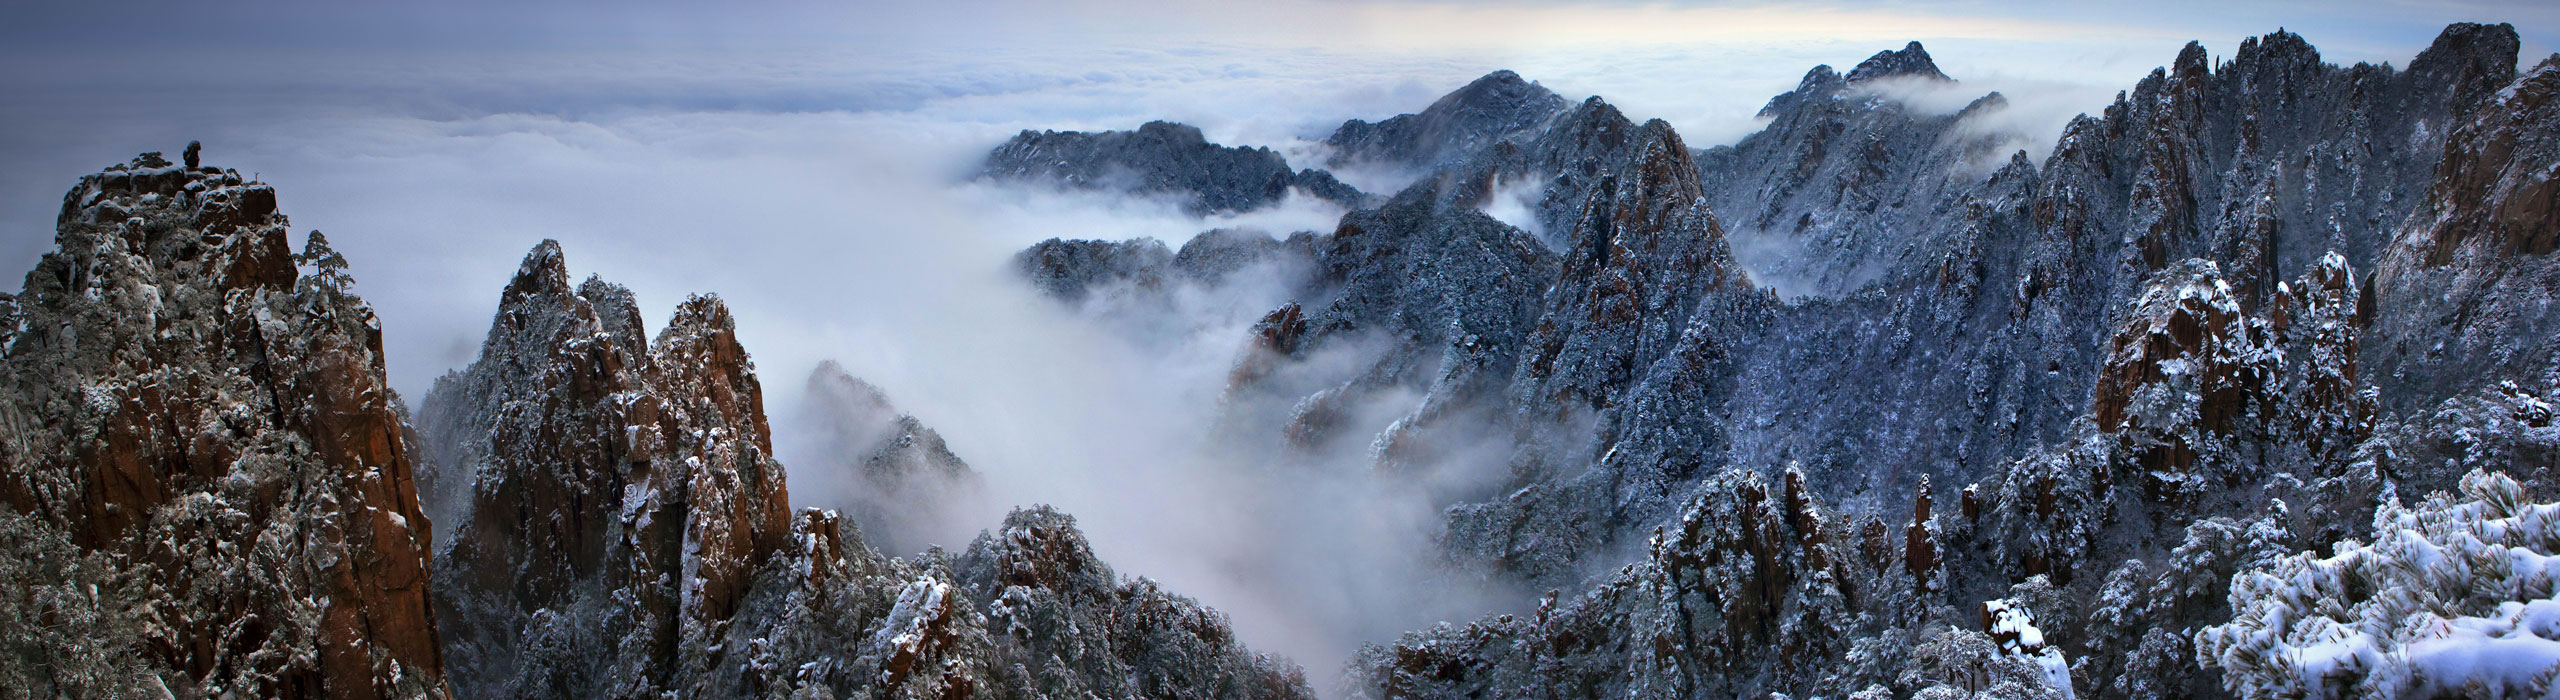 Huangshan Tours - The Yellow Mountains